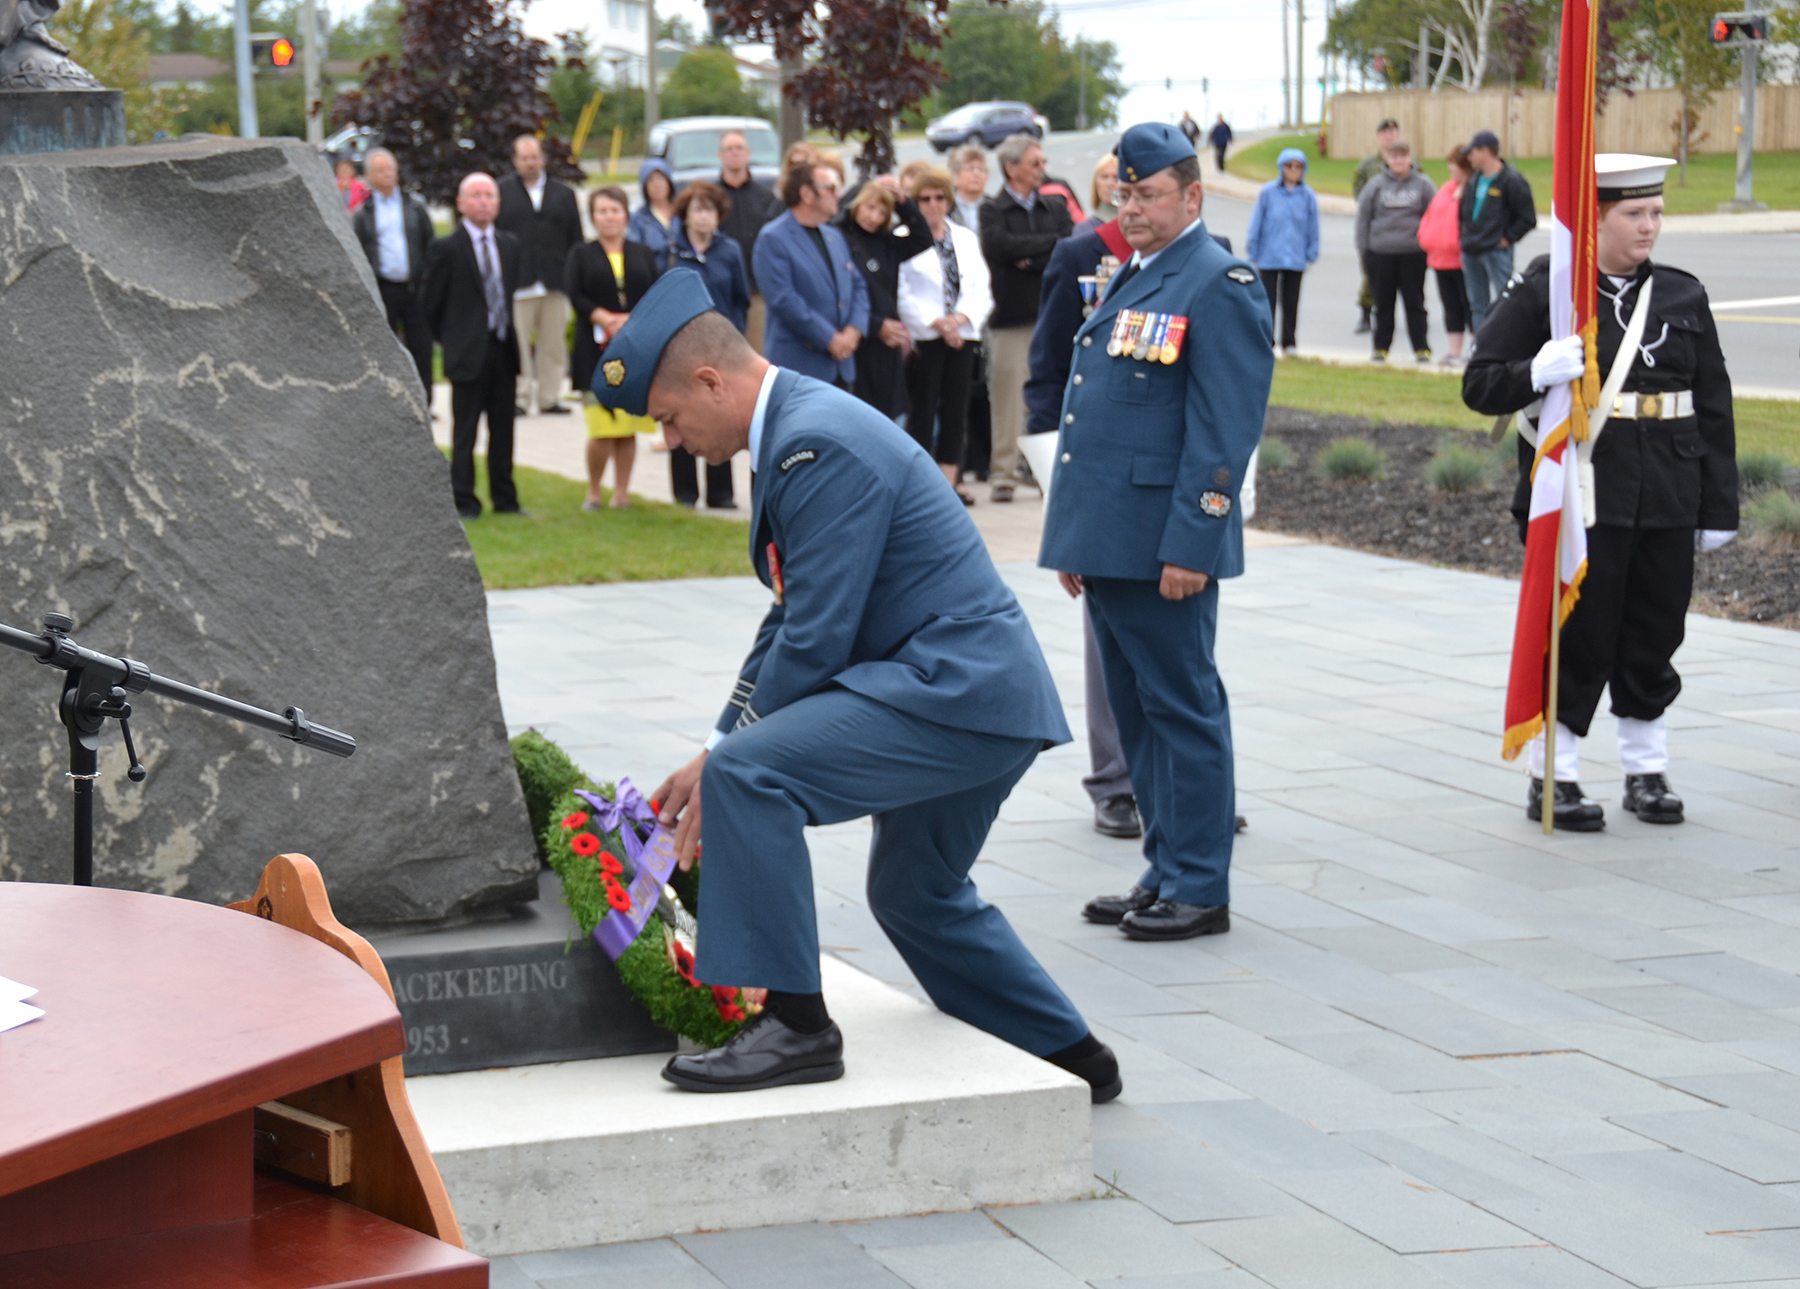 9 Wing commander Lieutenant-Colonel Pierre Haché lays a wreath at the Town of Gander Heritage Memorial Park on Sunday, 18 September 2016, during the 76th Anniversary of the Battle of Britain Ceremony. PHOTO: Sergeant Carter MacLellon